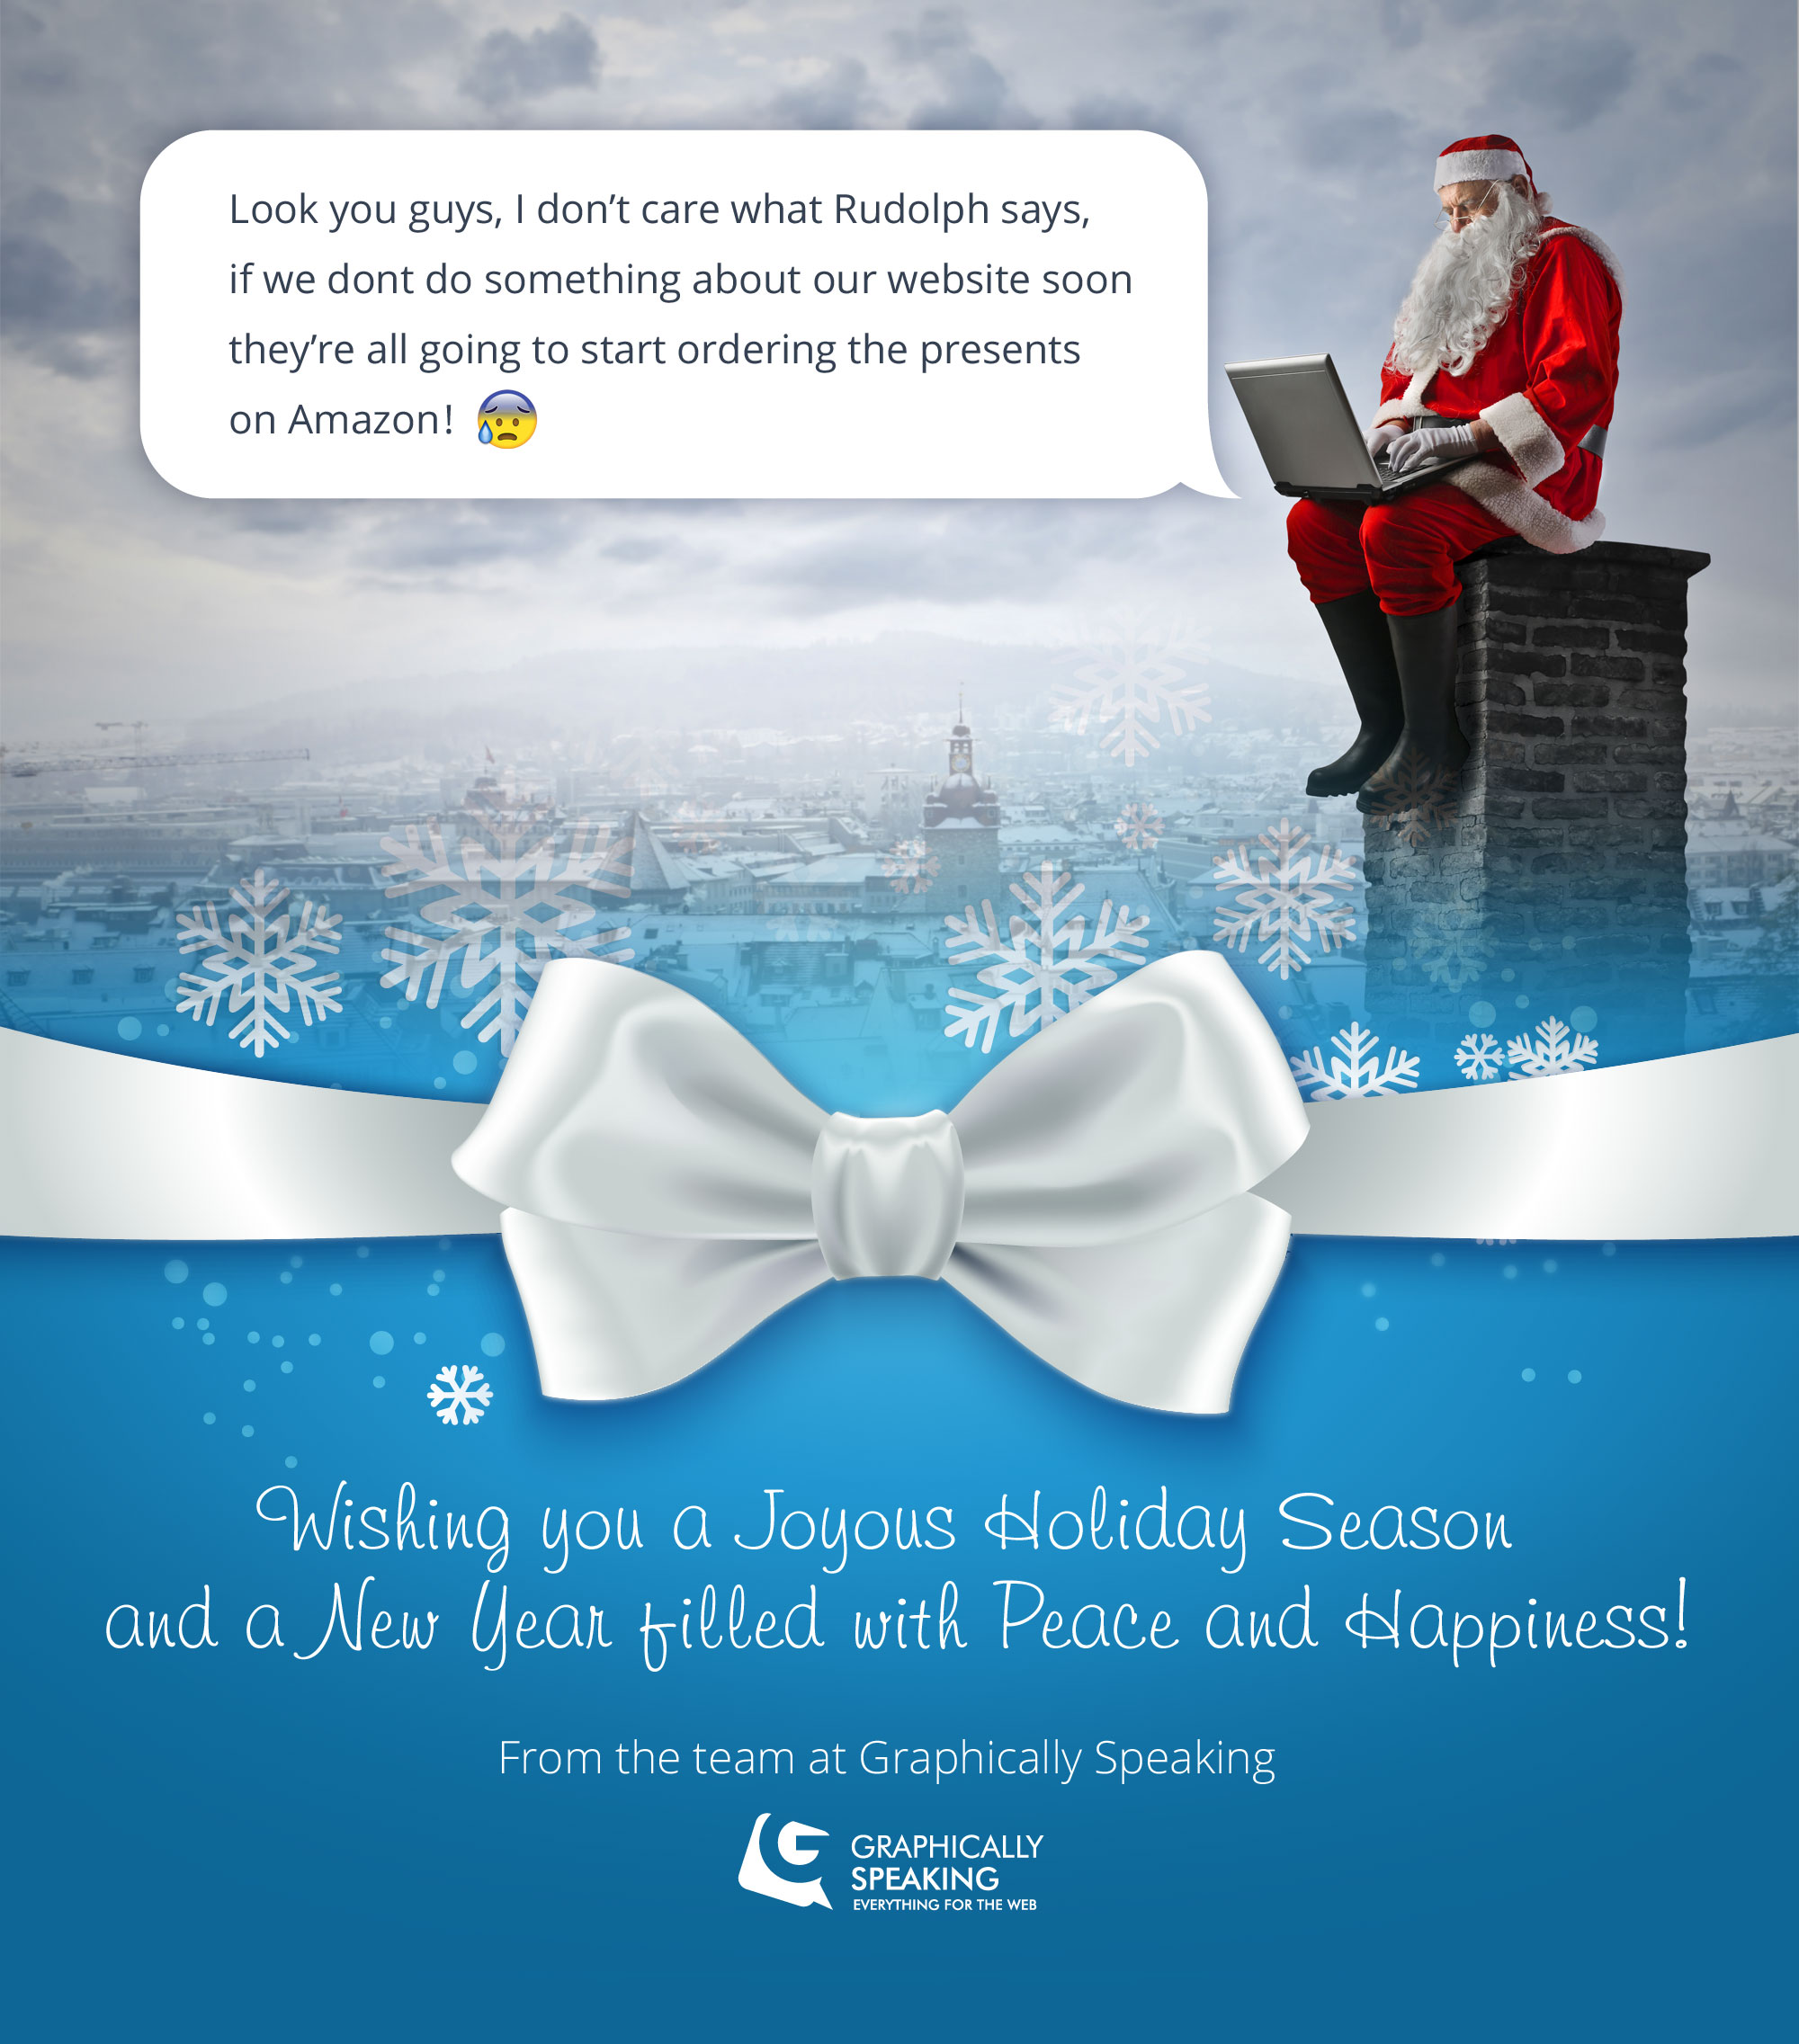 Merry Christmas from Graphically Speaking